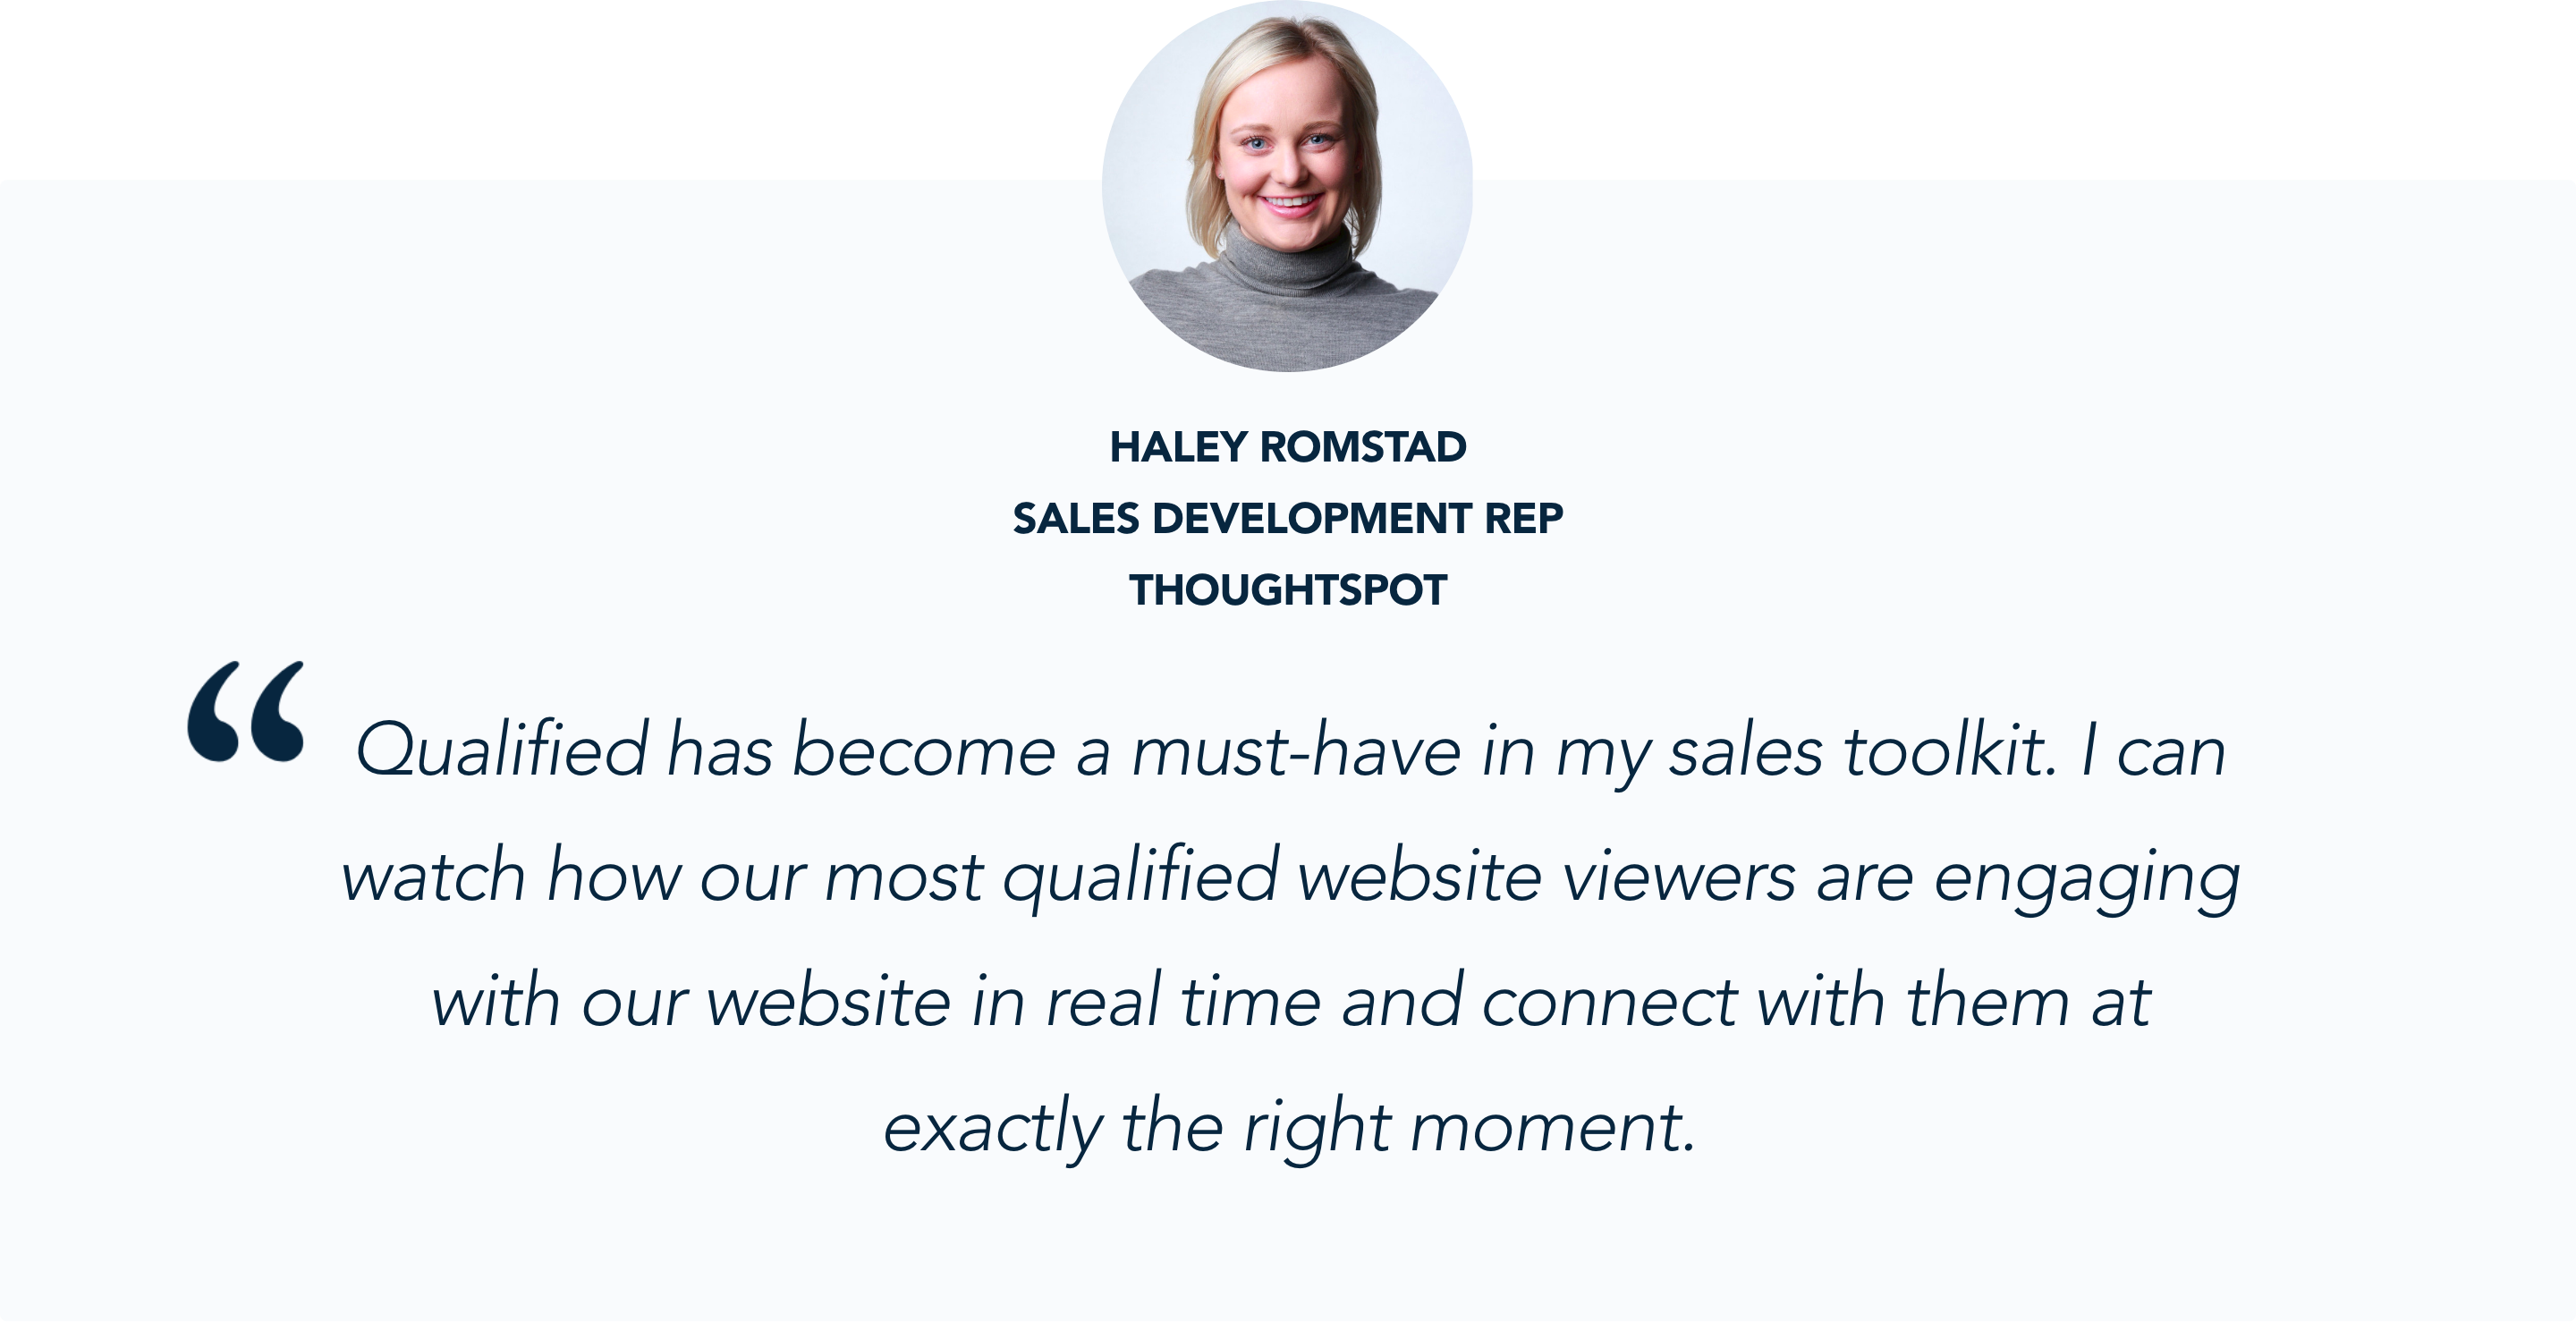 Haley Romstad, ThoughtSpot, on Conversational Marketing